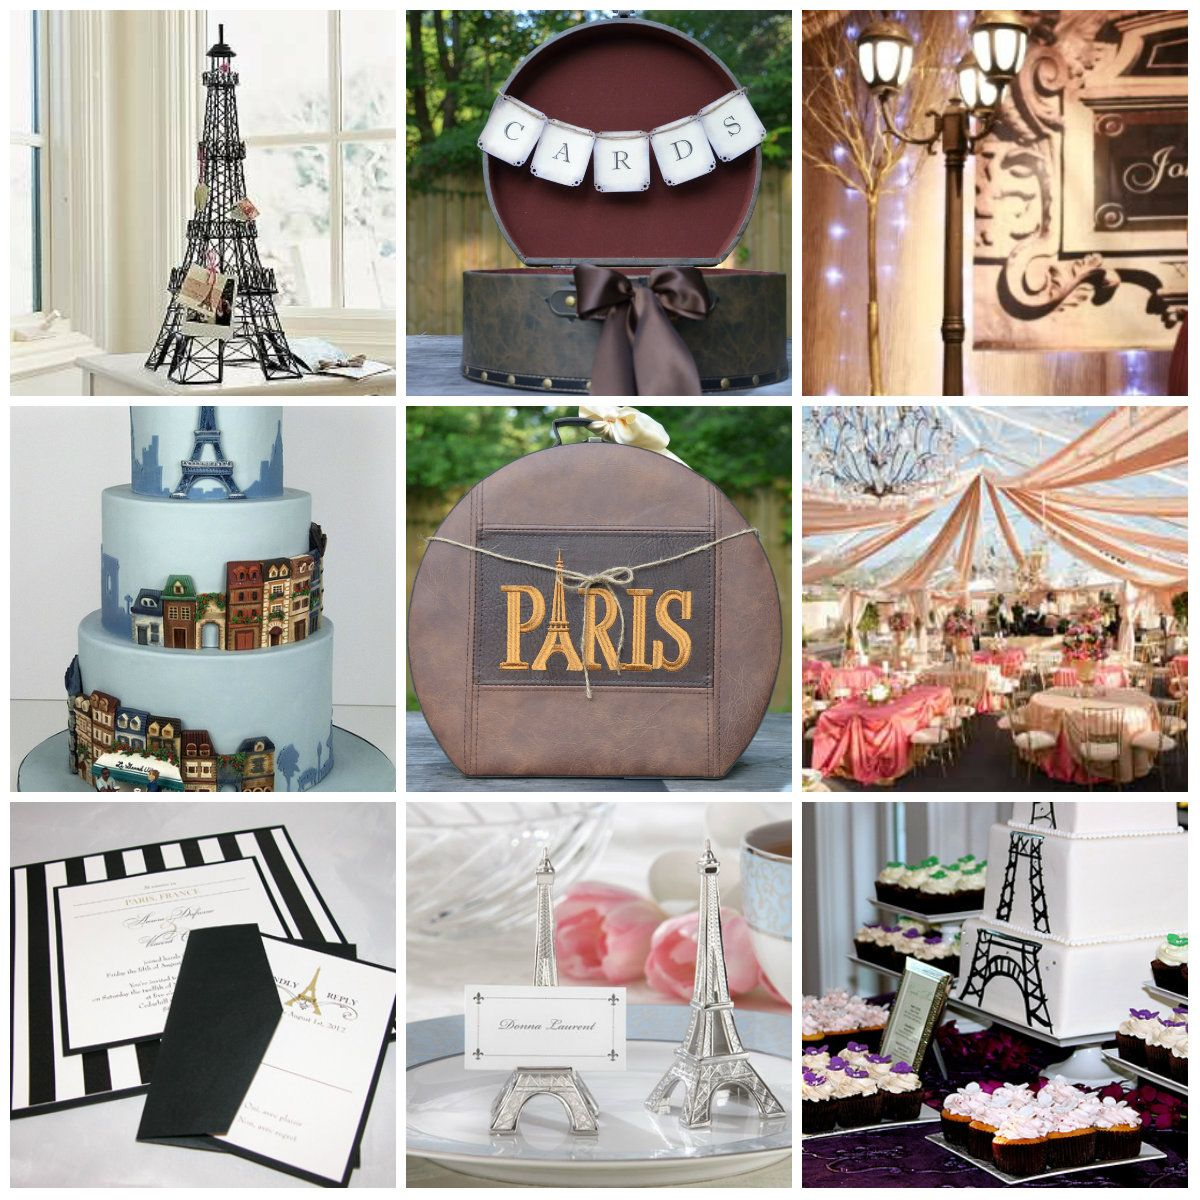 Wedding Party Ideas: Paris Themed Wedding